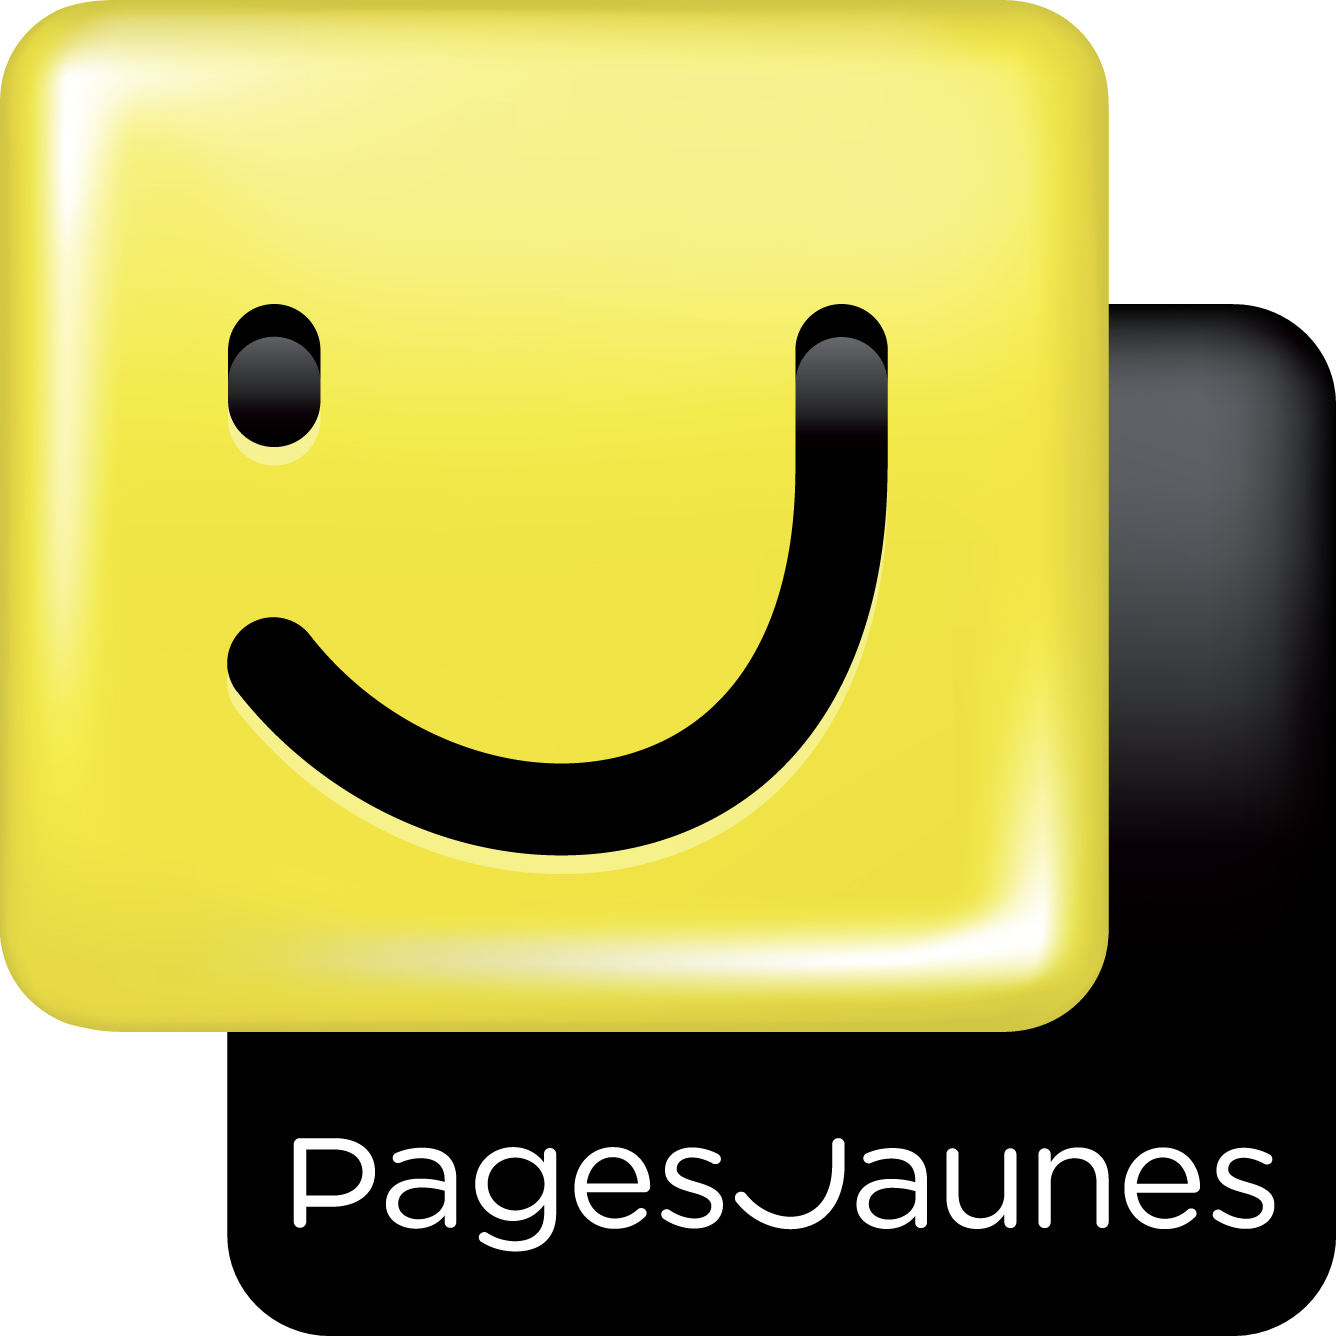 Yahoo! joins forces with PagesJaunes